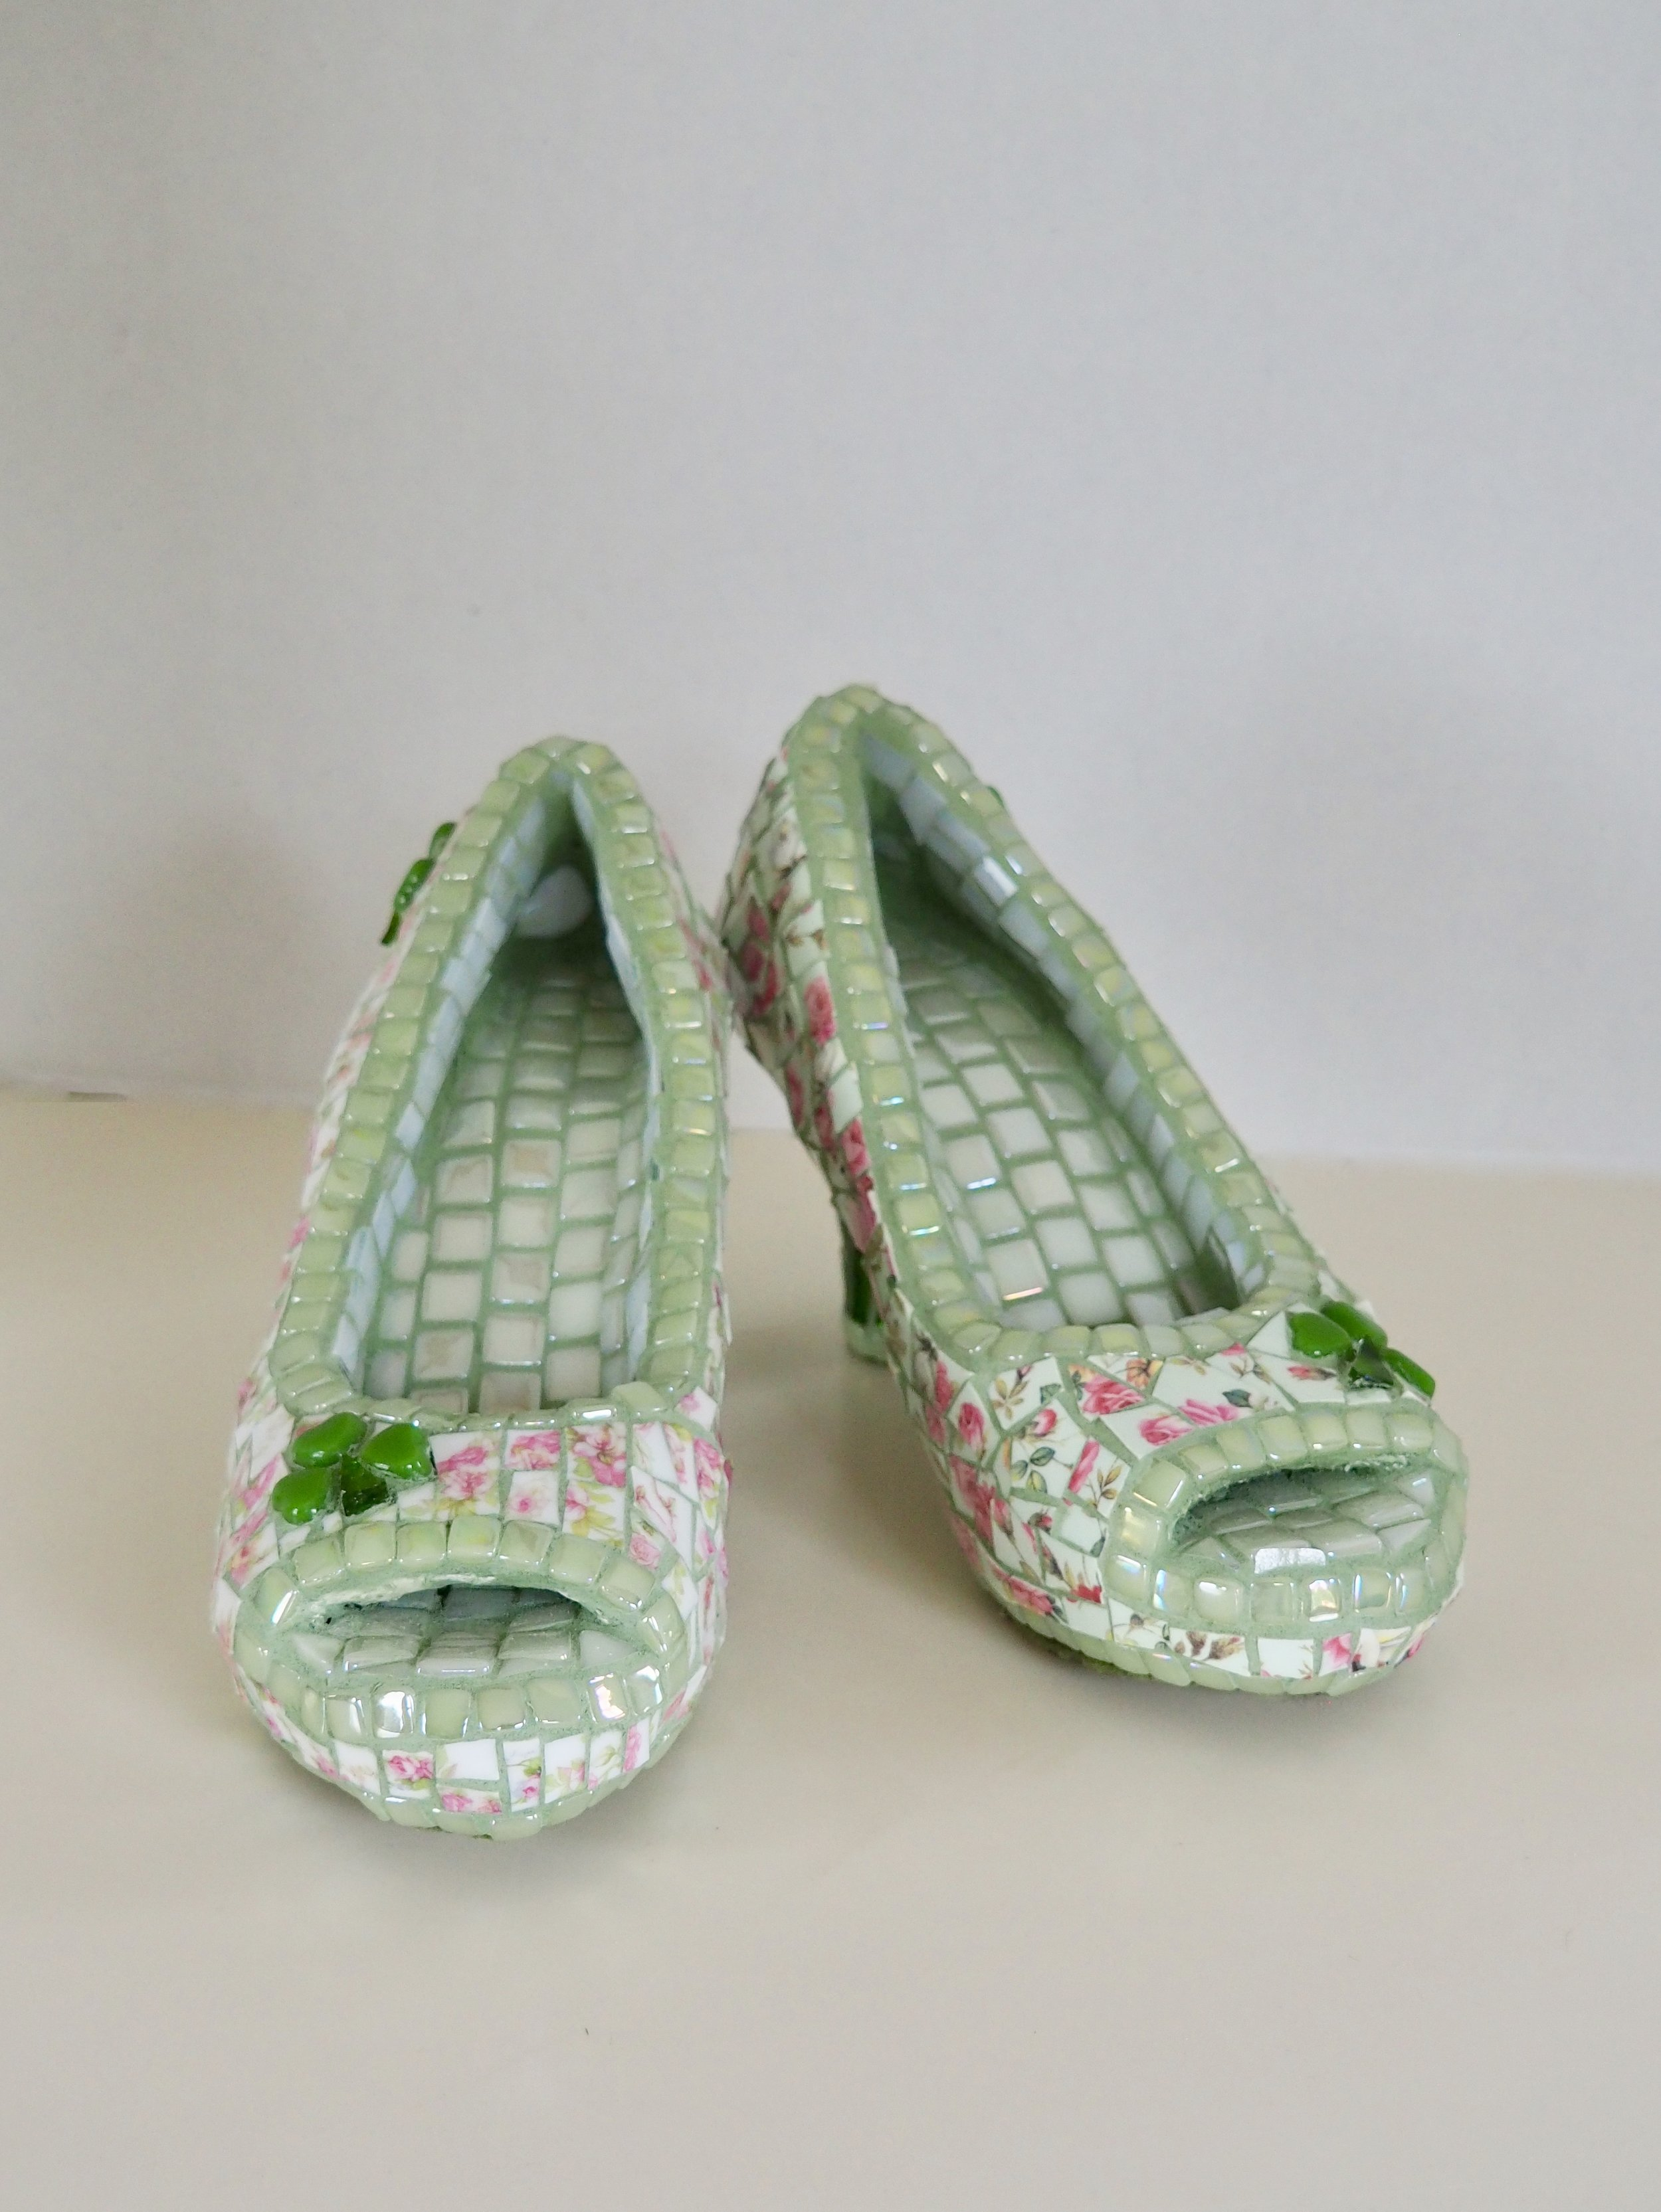 My Lucky Heels - Tesserae includes china, glow in the dark tiles, tiny tiles and stained glass.